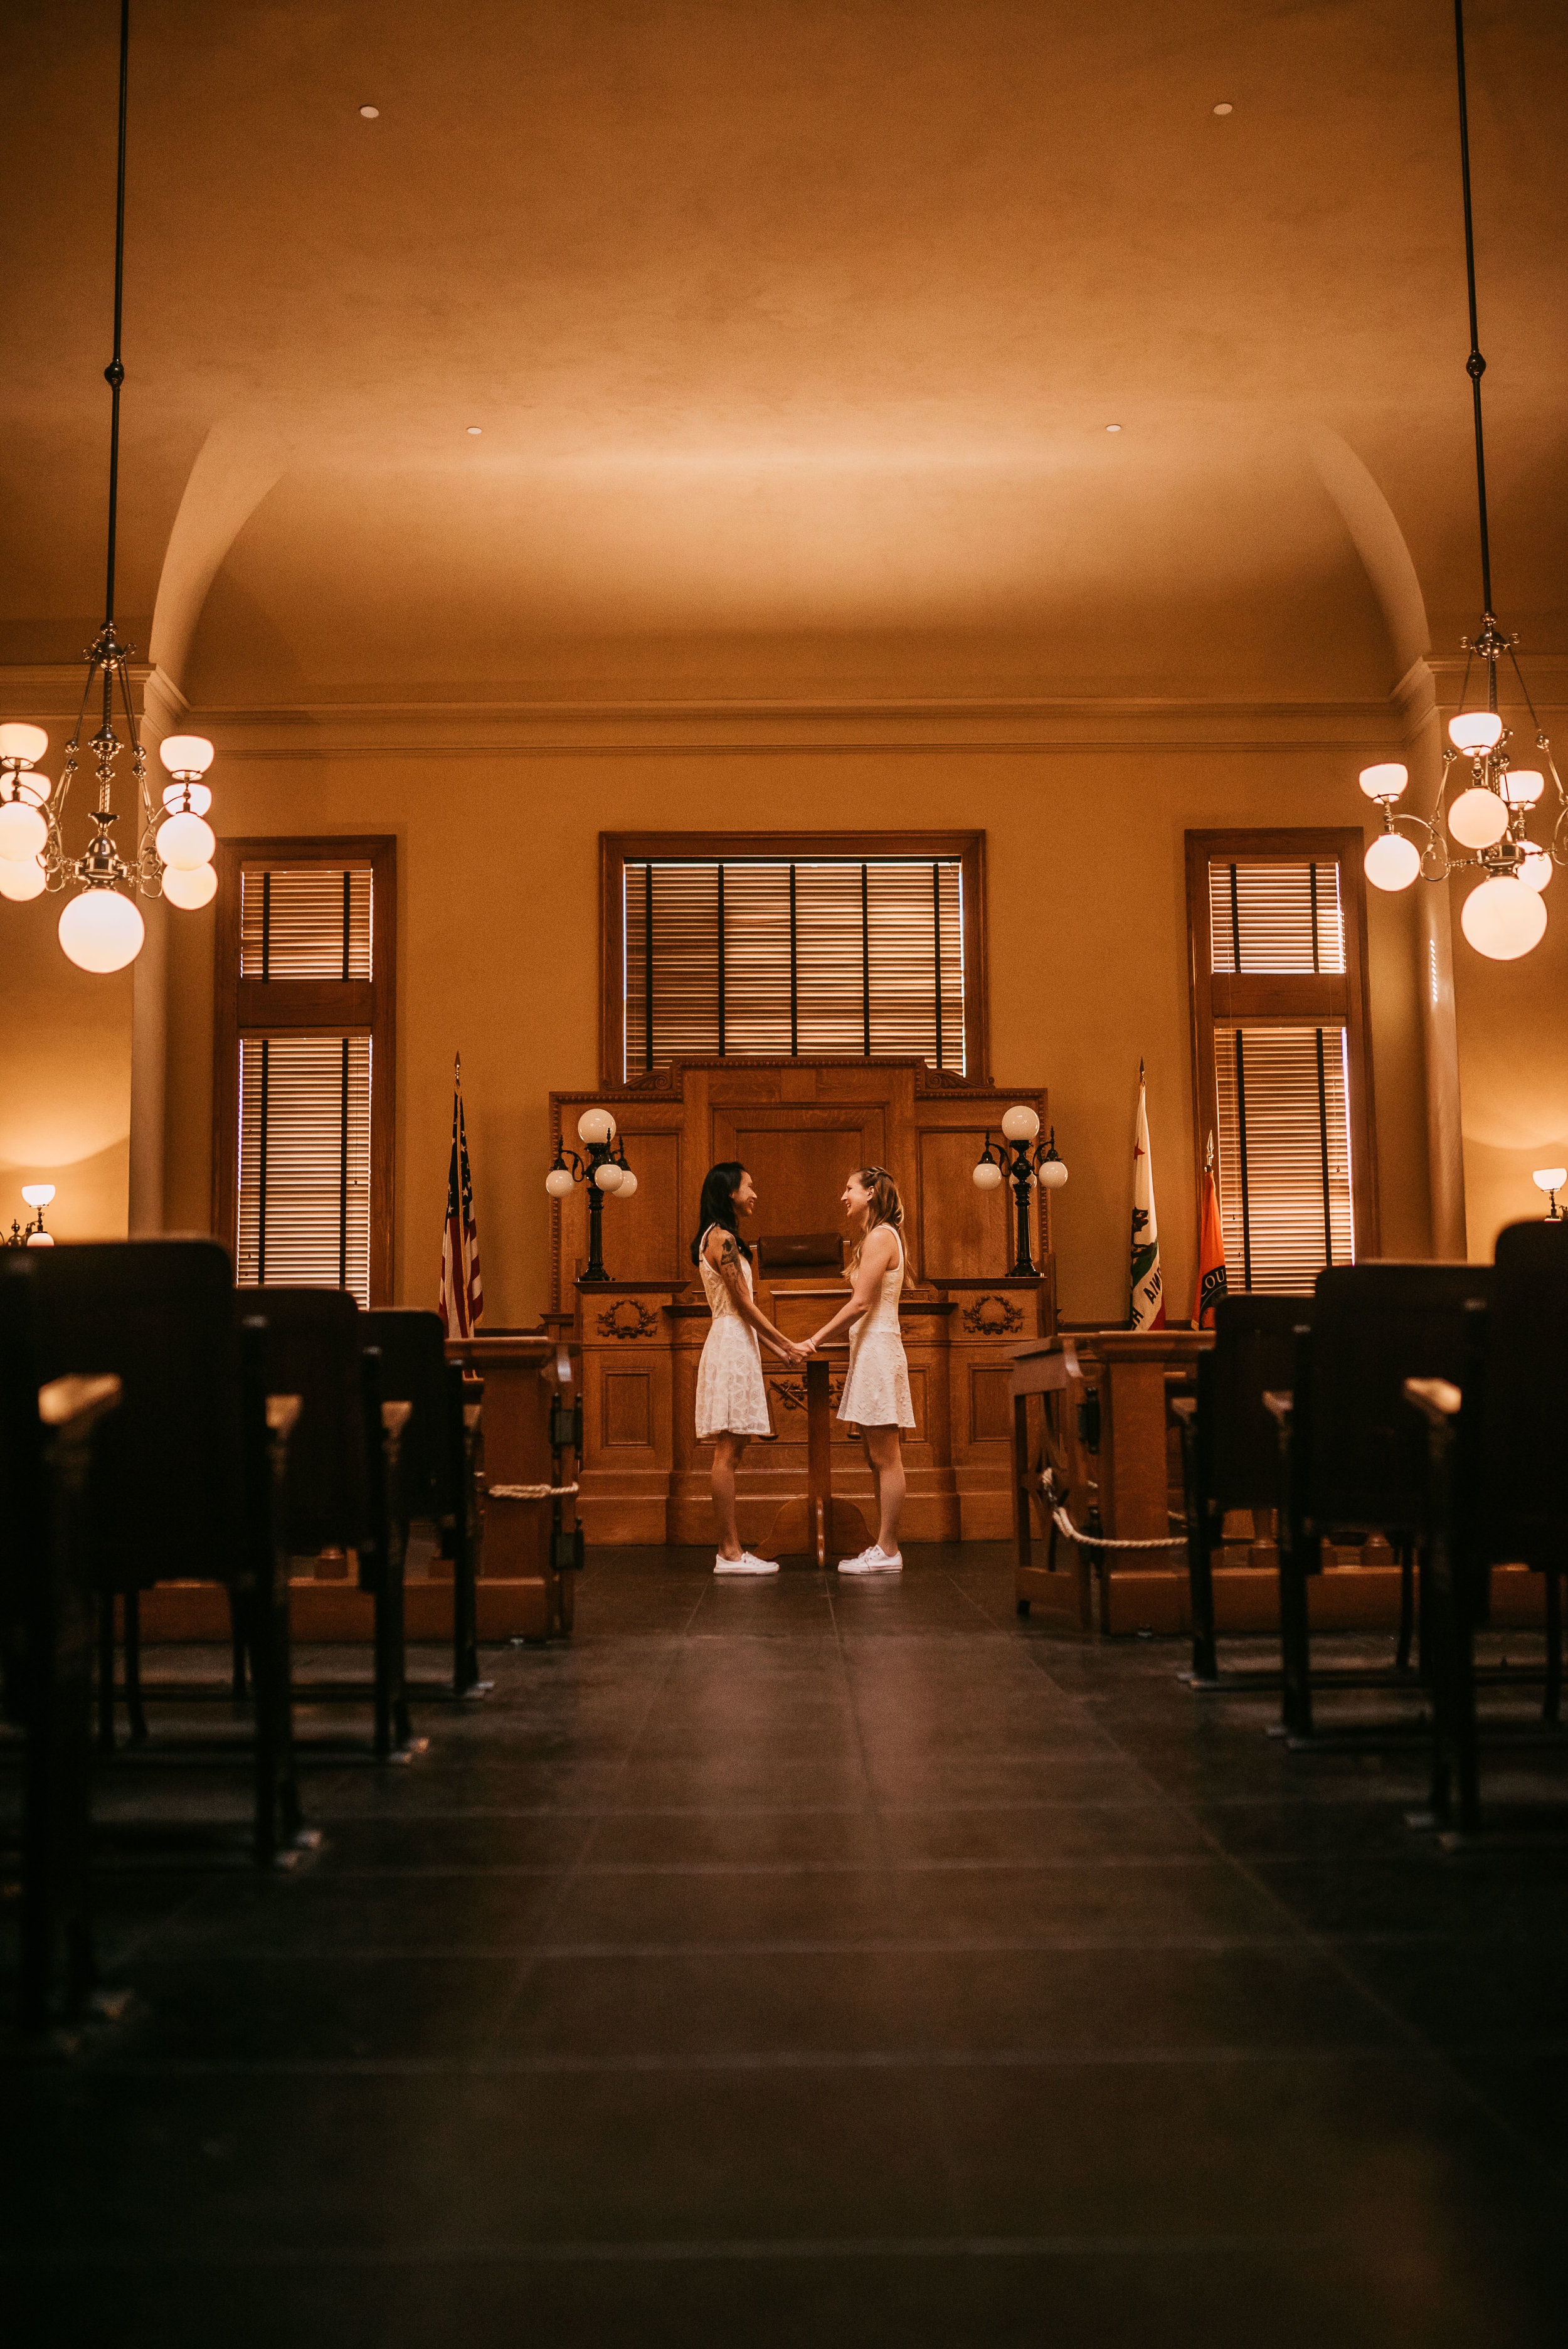 debbie-kelly-santa-ana-old-orange-county-courthouse-elopement-wedding-1-15.jpg